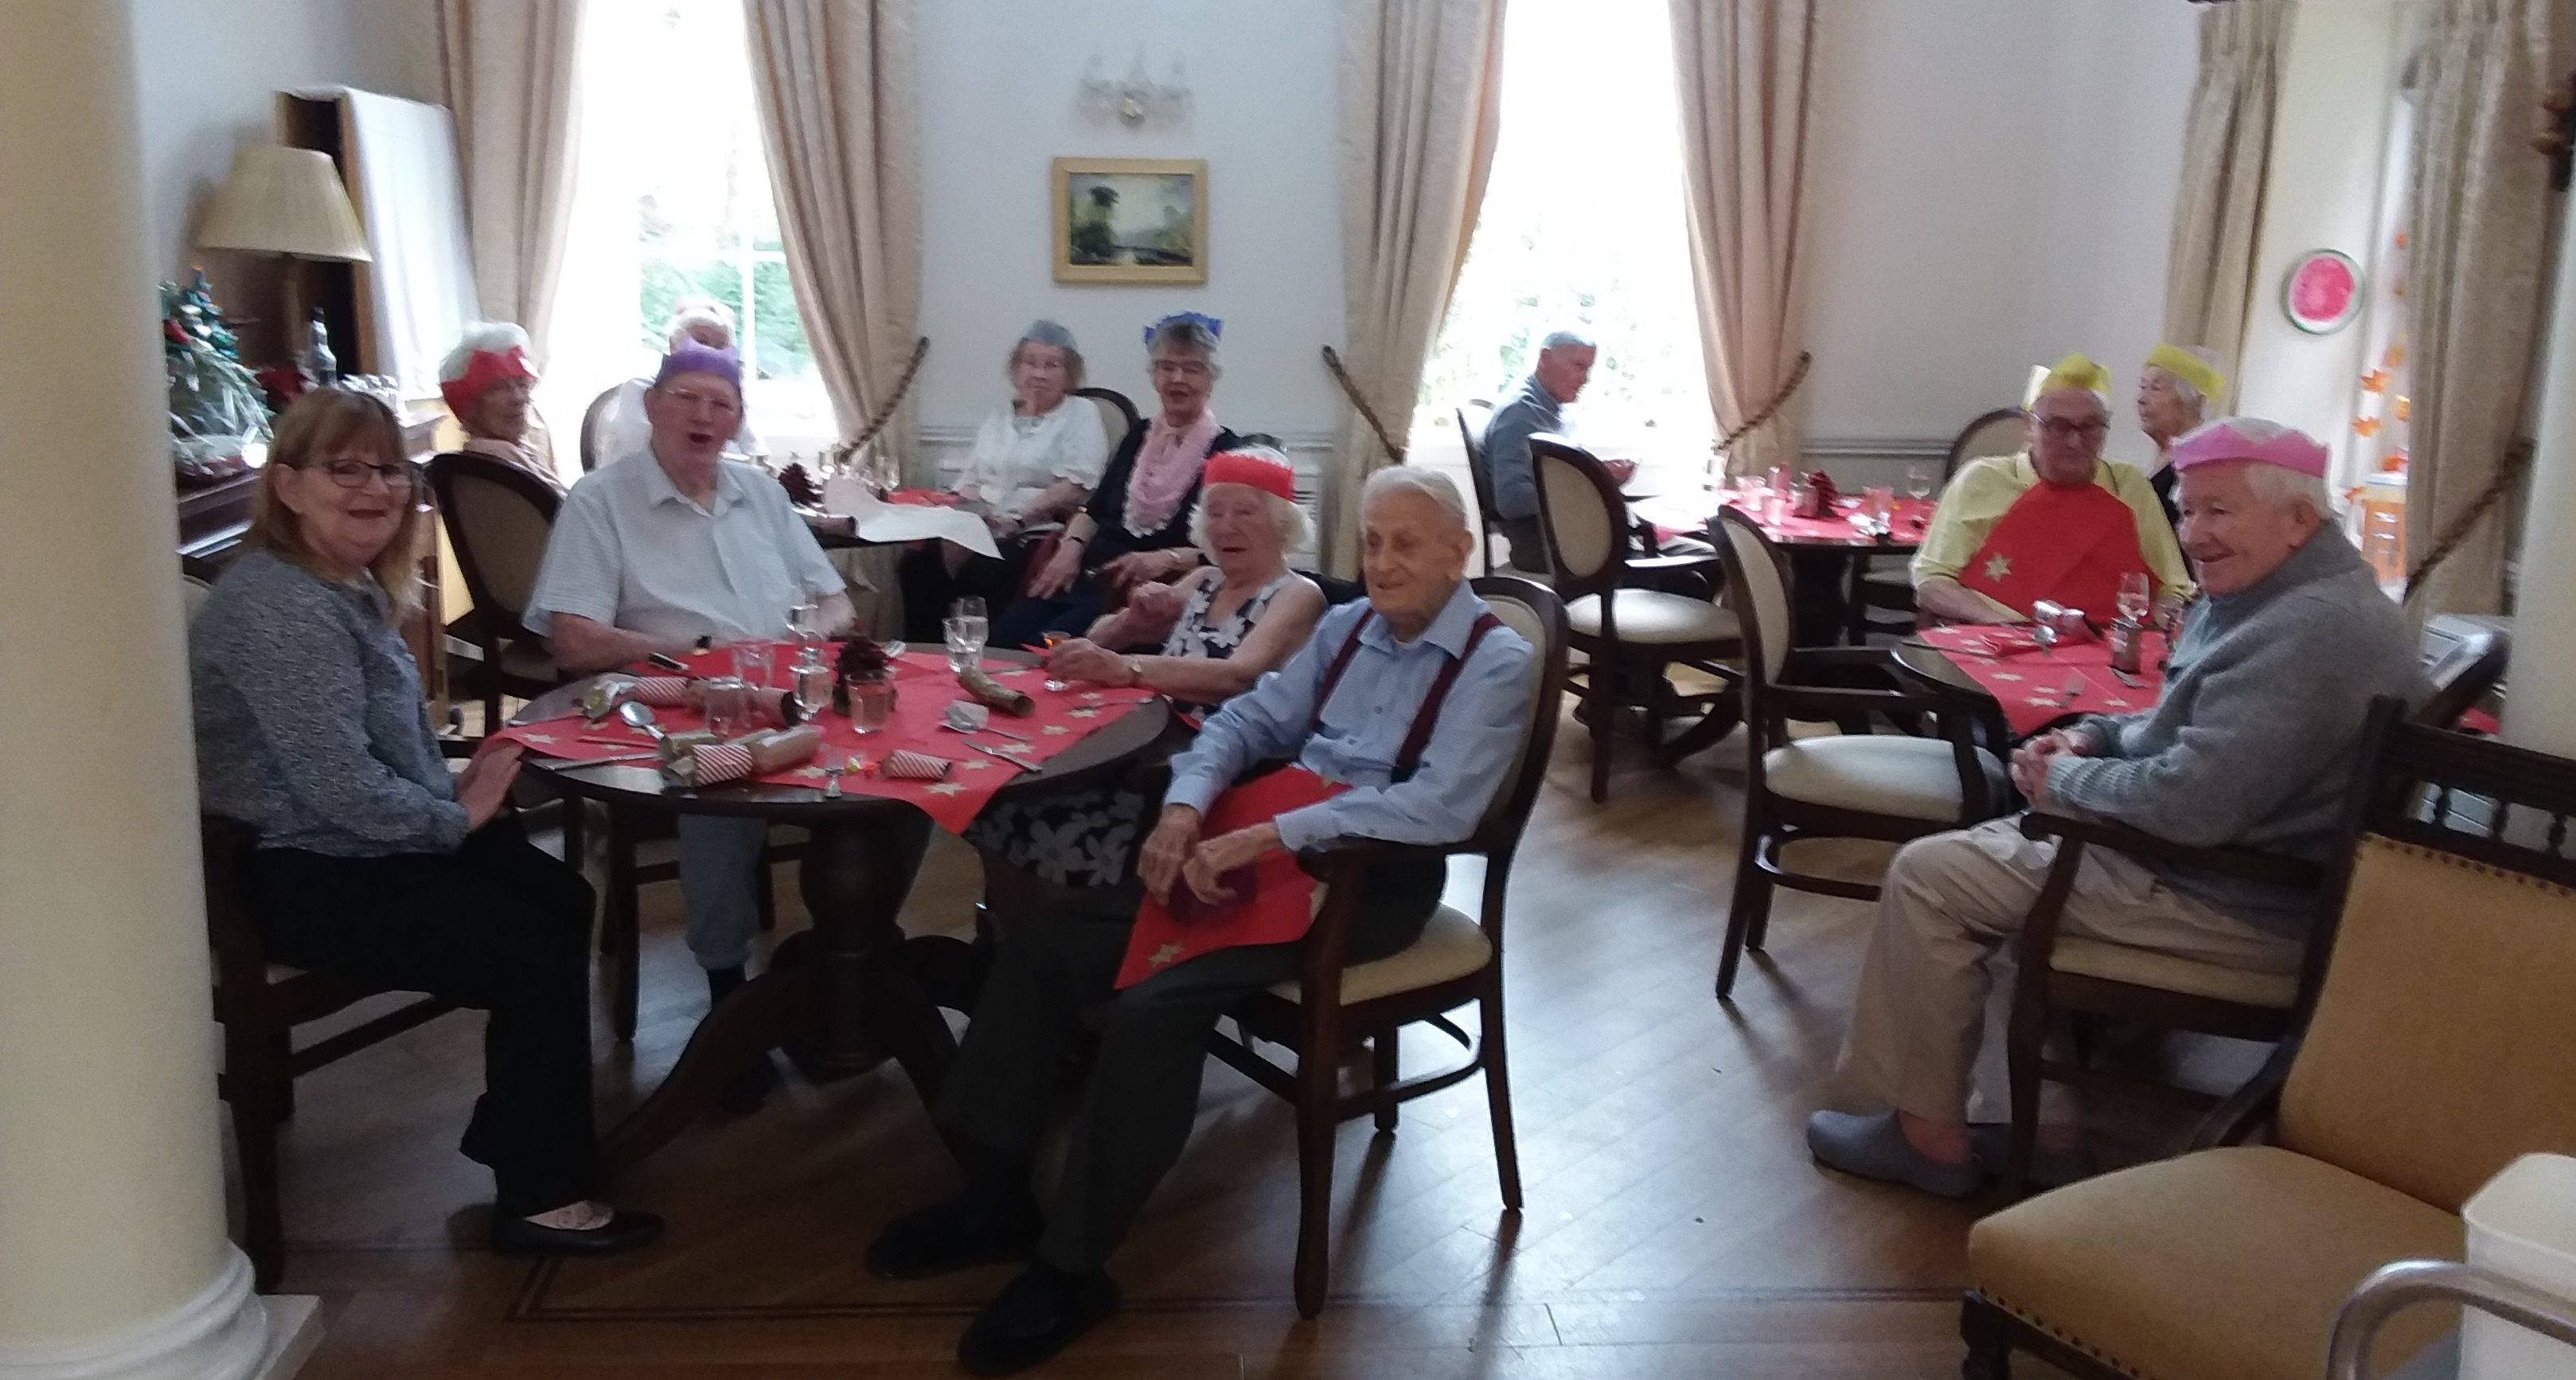 New Year 2020 party at Blackbrook House